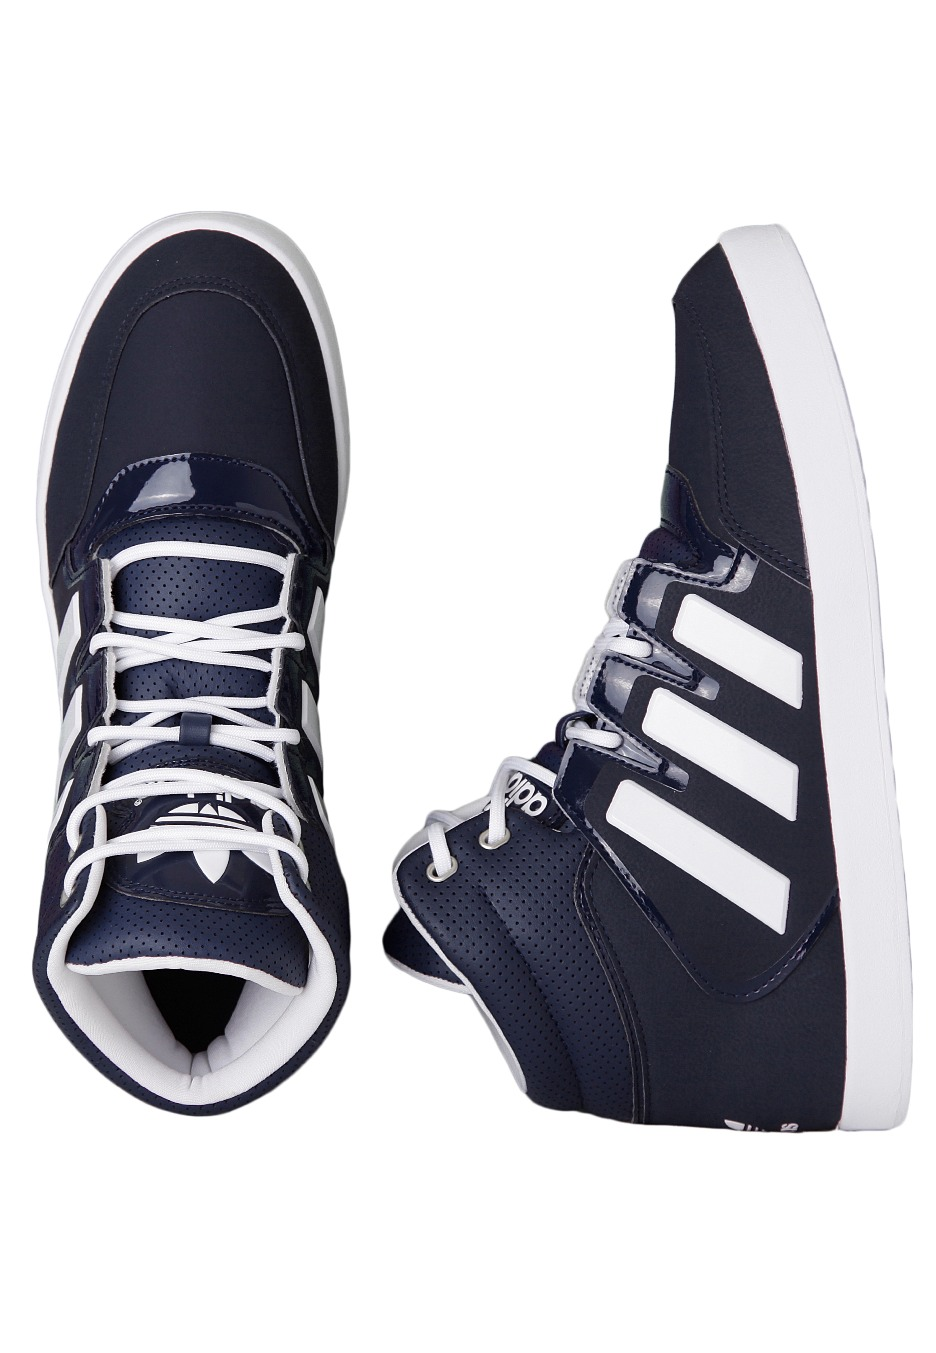 best service 66df7 75d88 Adidas - Dropstep Collegiate NavyRunning White - Shoes - Impericon.com UK